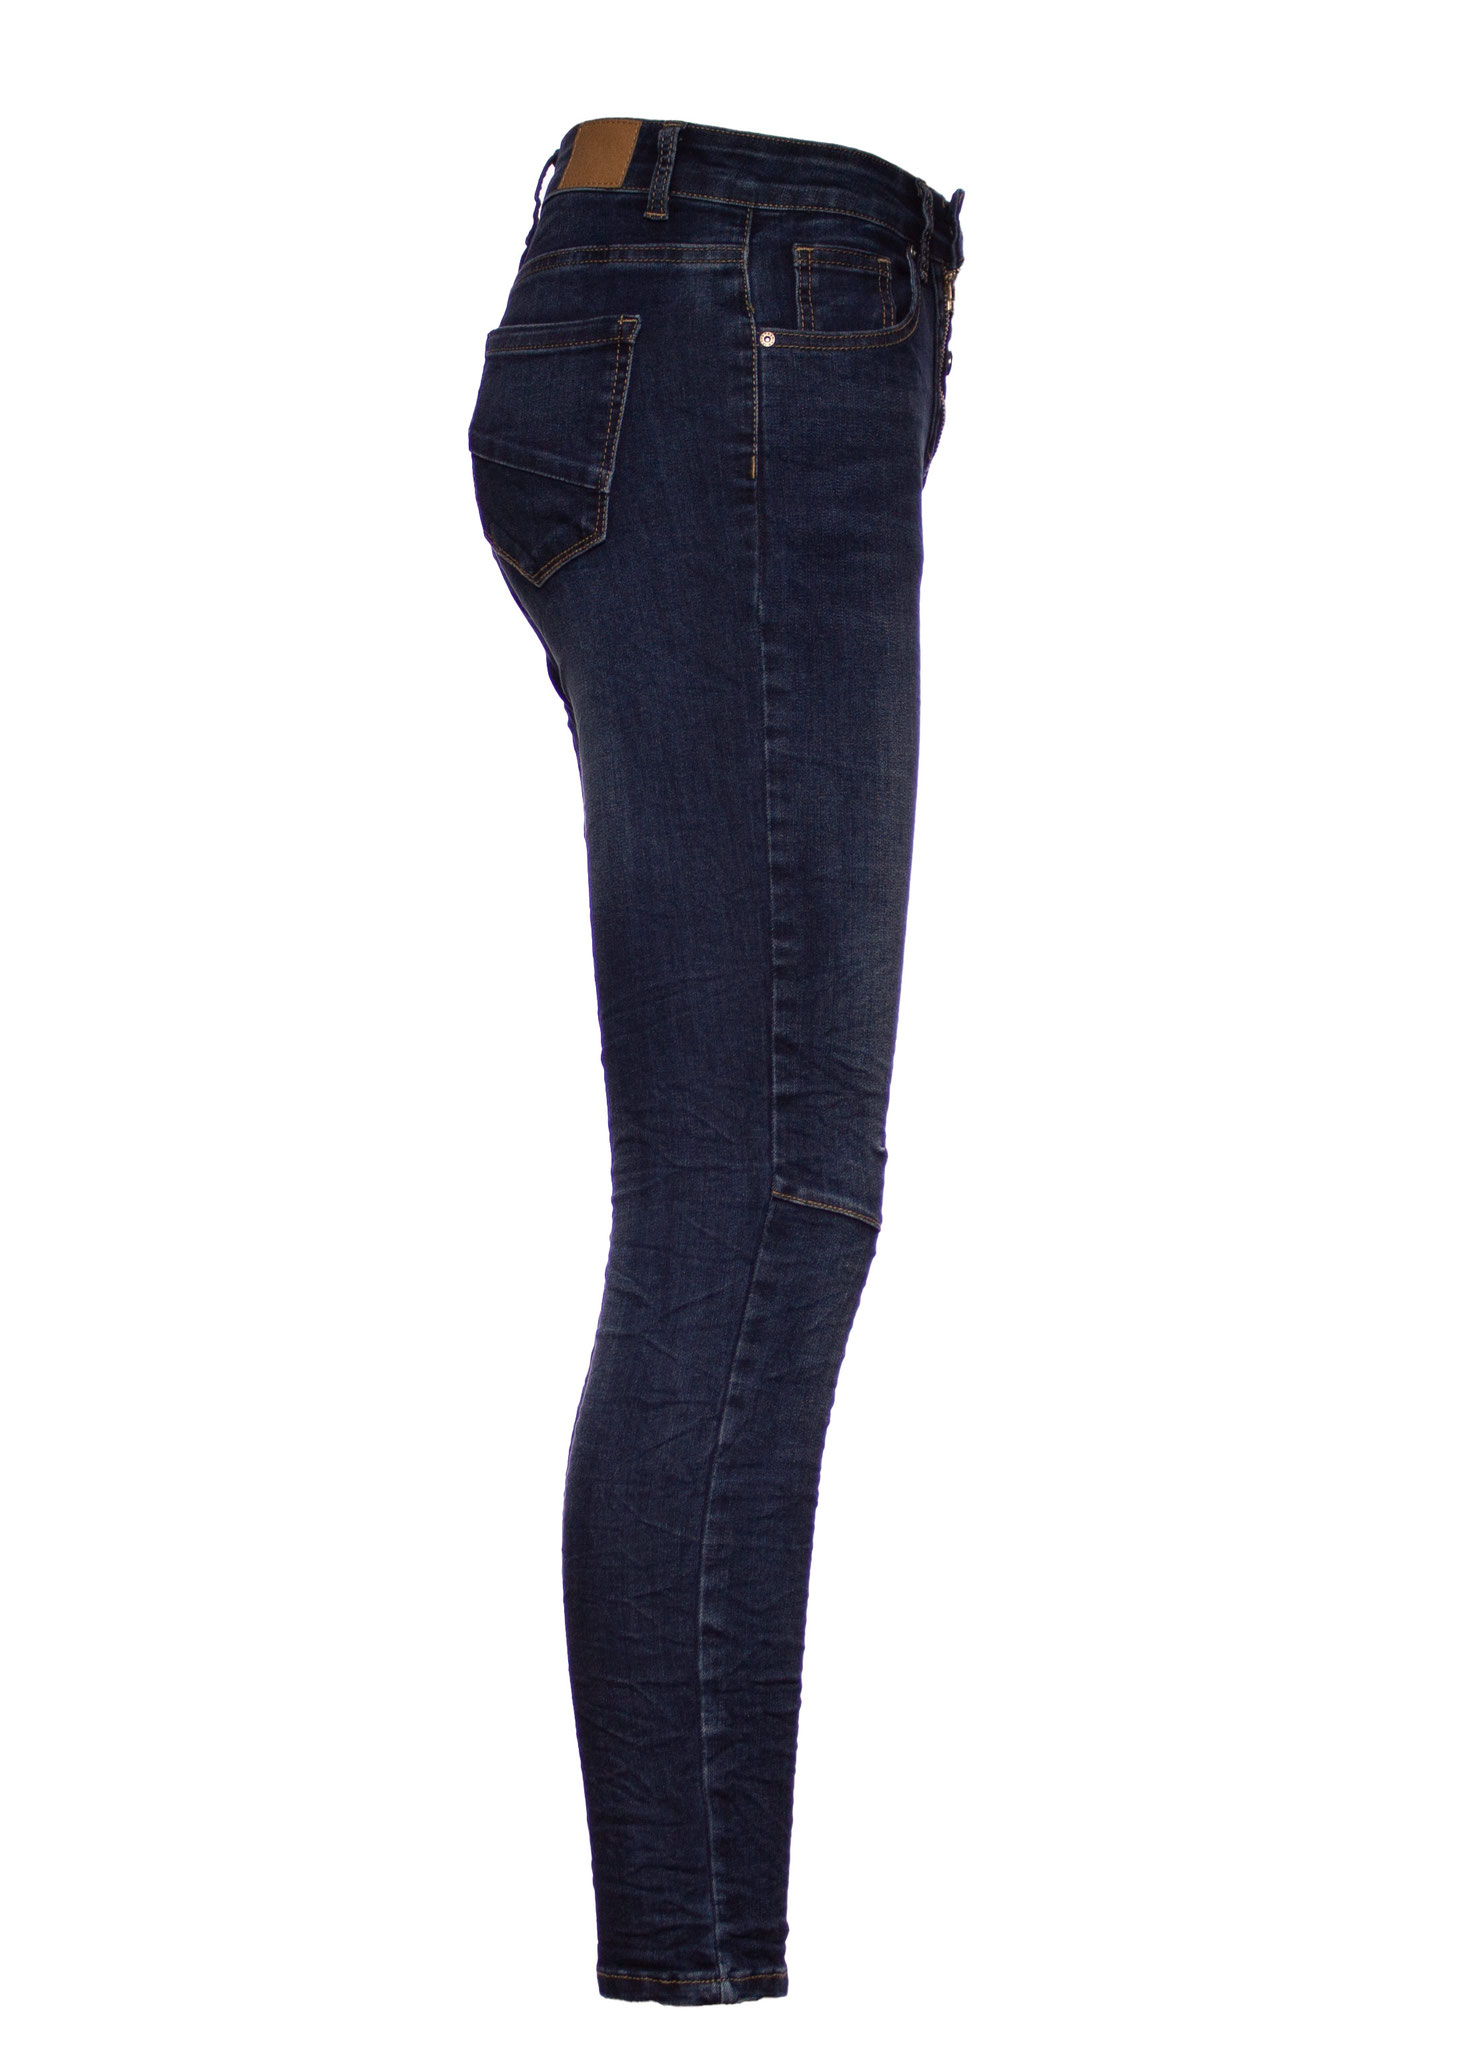 Jeans 39,99€